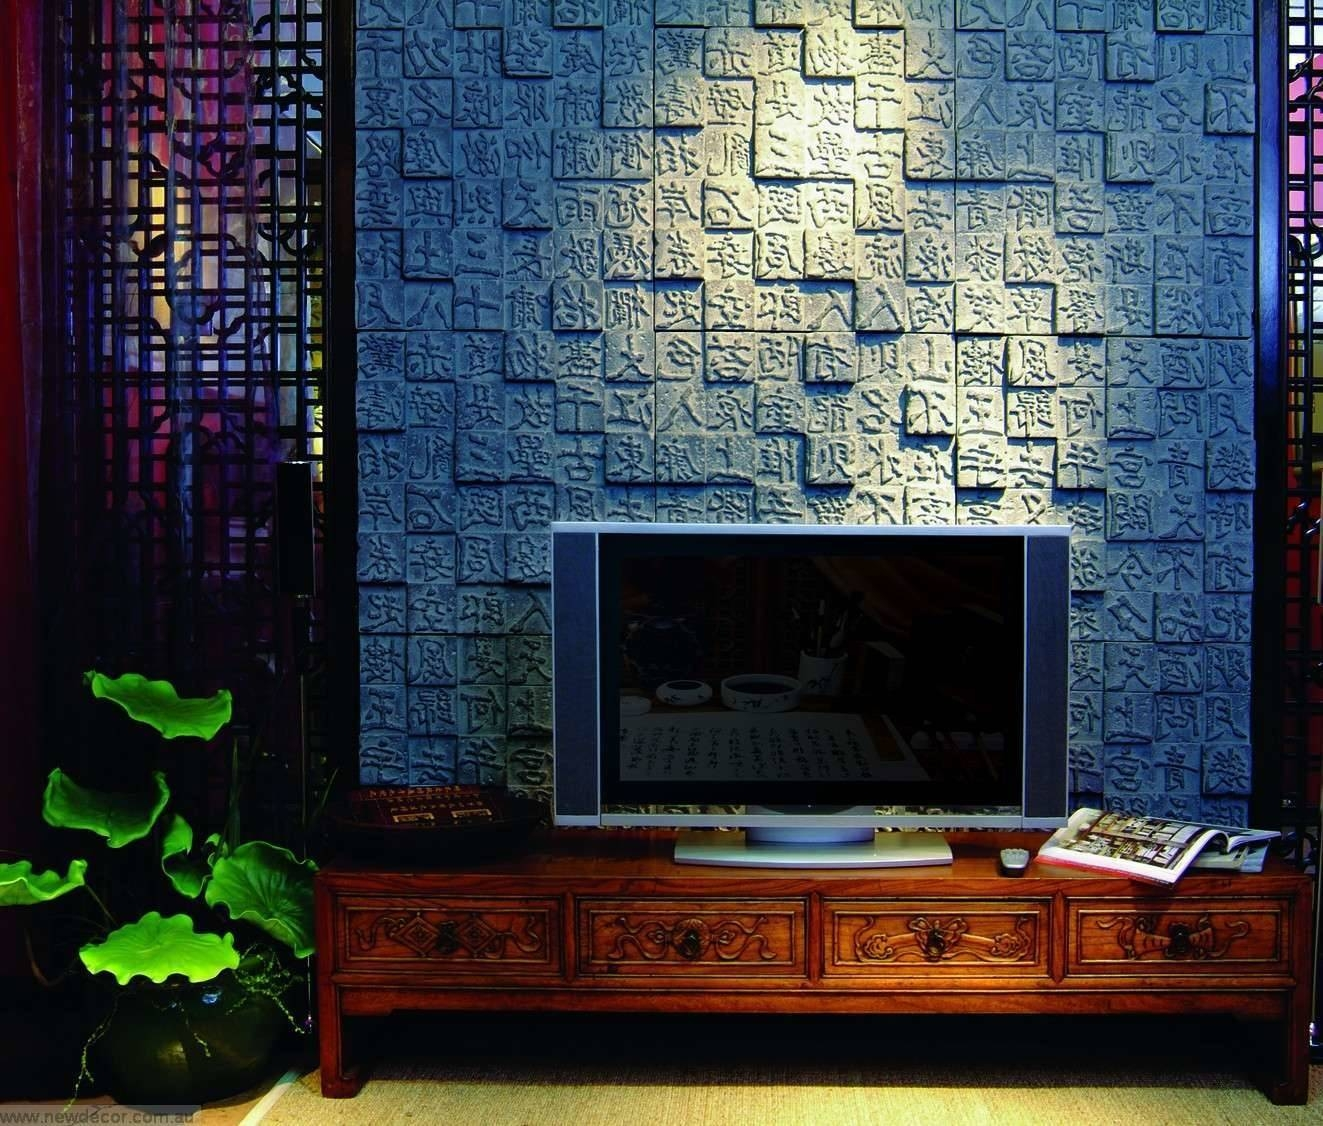 3D Wall Imagesnewdecor 3D Wall Arts 3Dpanels. Wallart Within Most Recent Wetherill Park 3D Wall Art (Gallery 1 of 20)